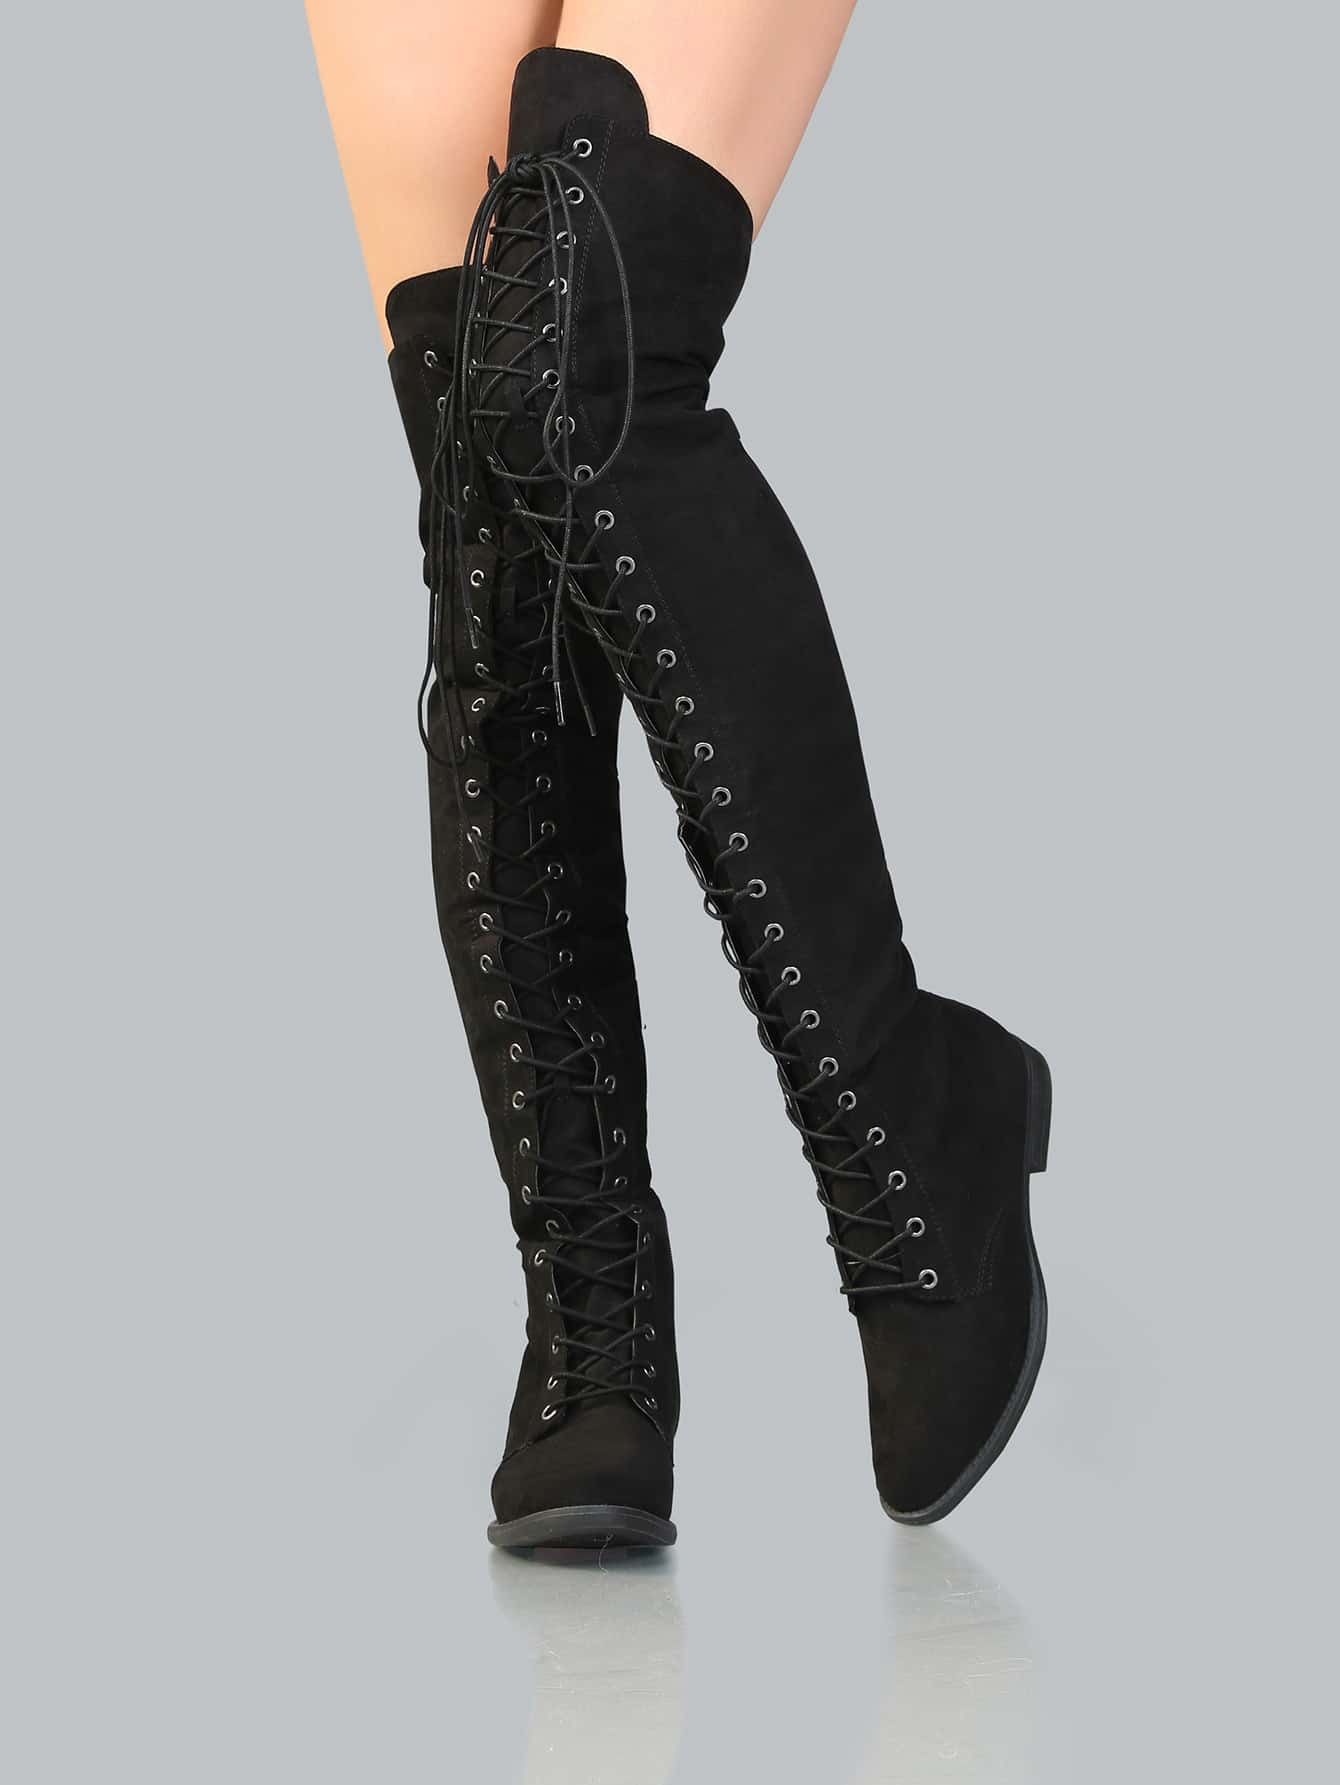 Lace Up Flat Suede Boots BLACK -SheIn(Sheinside)